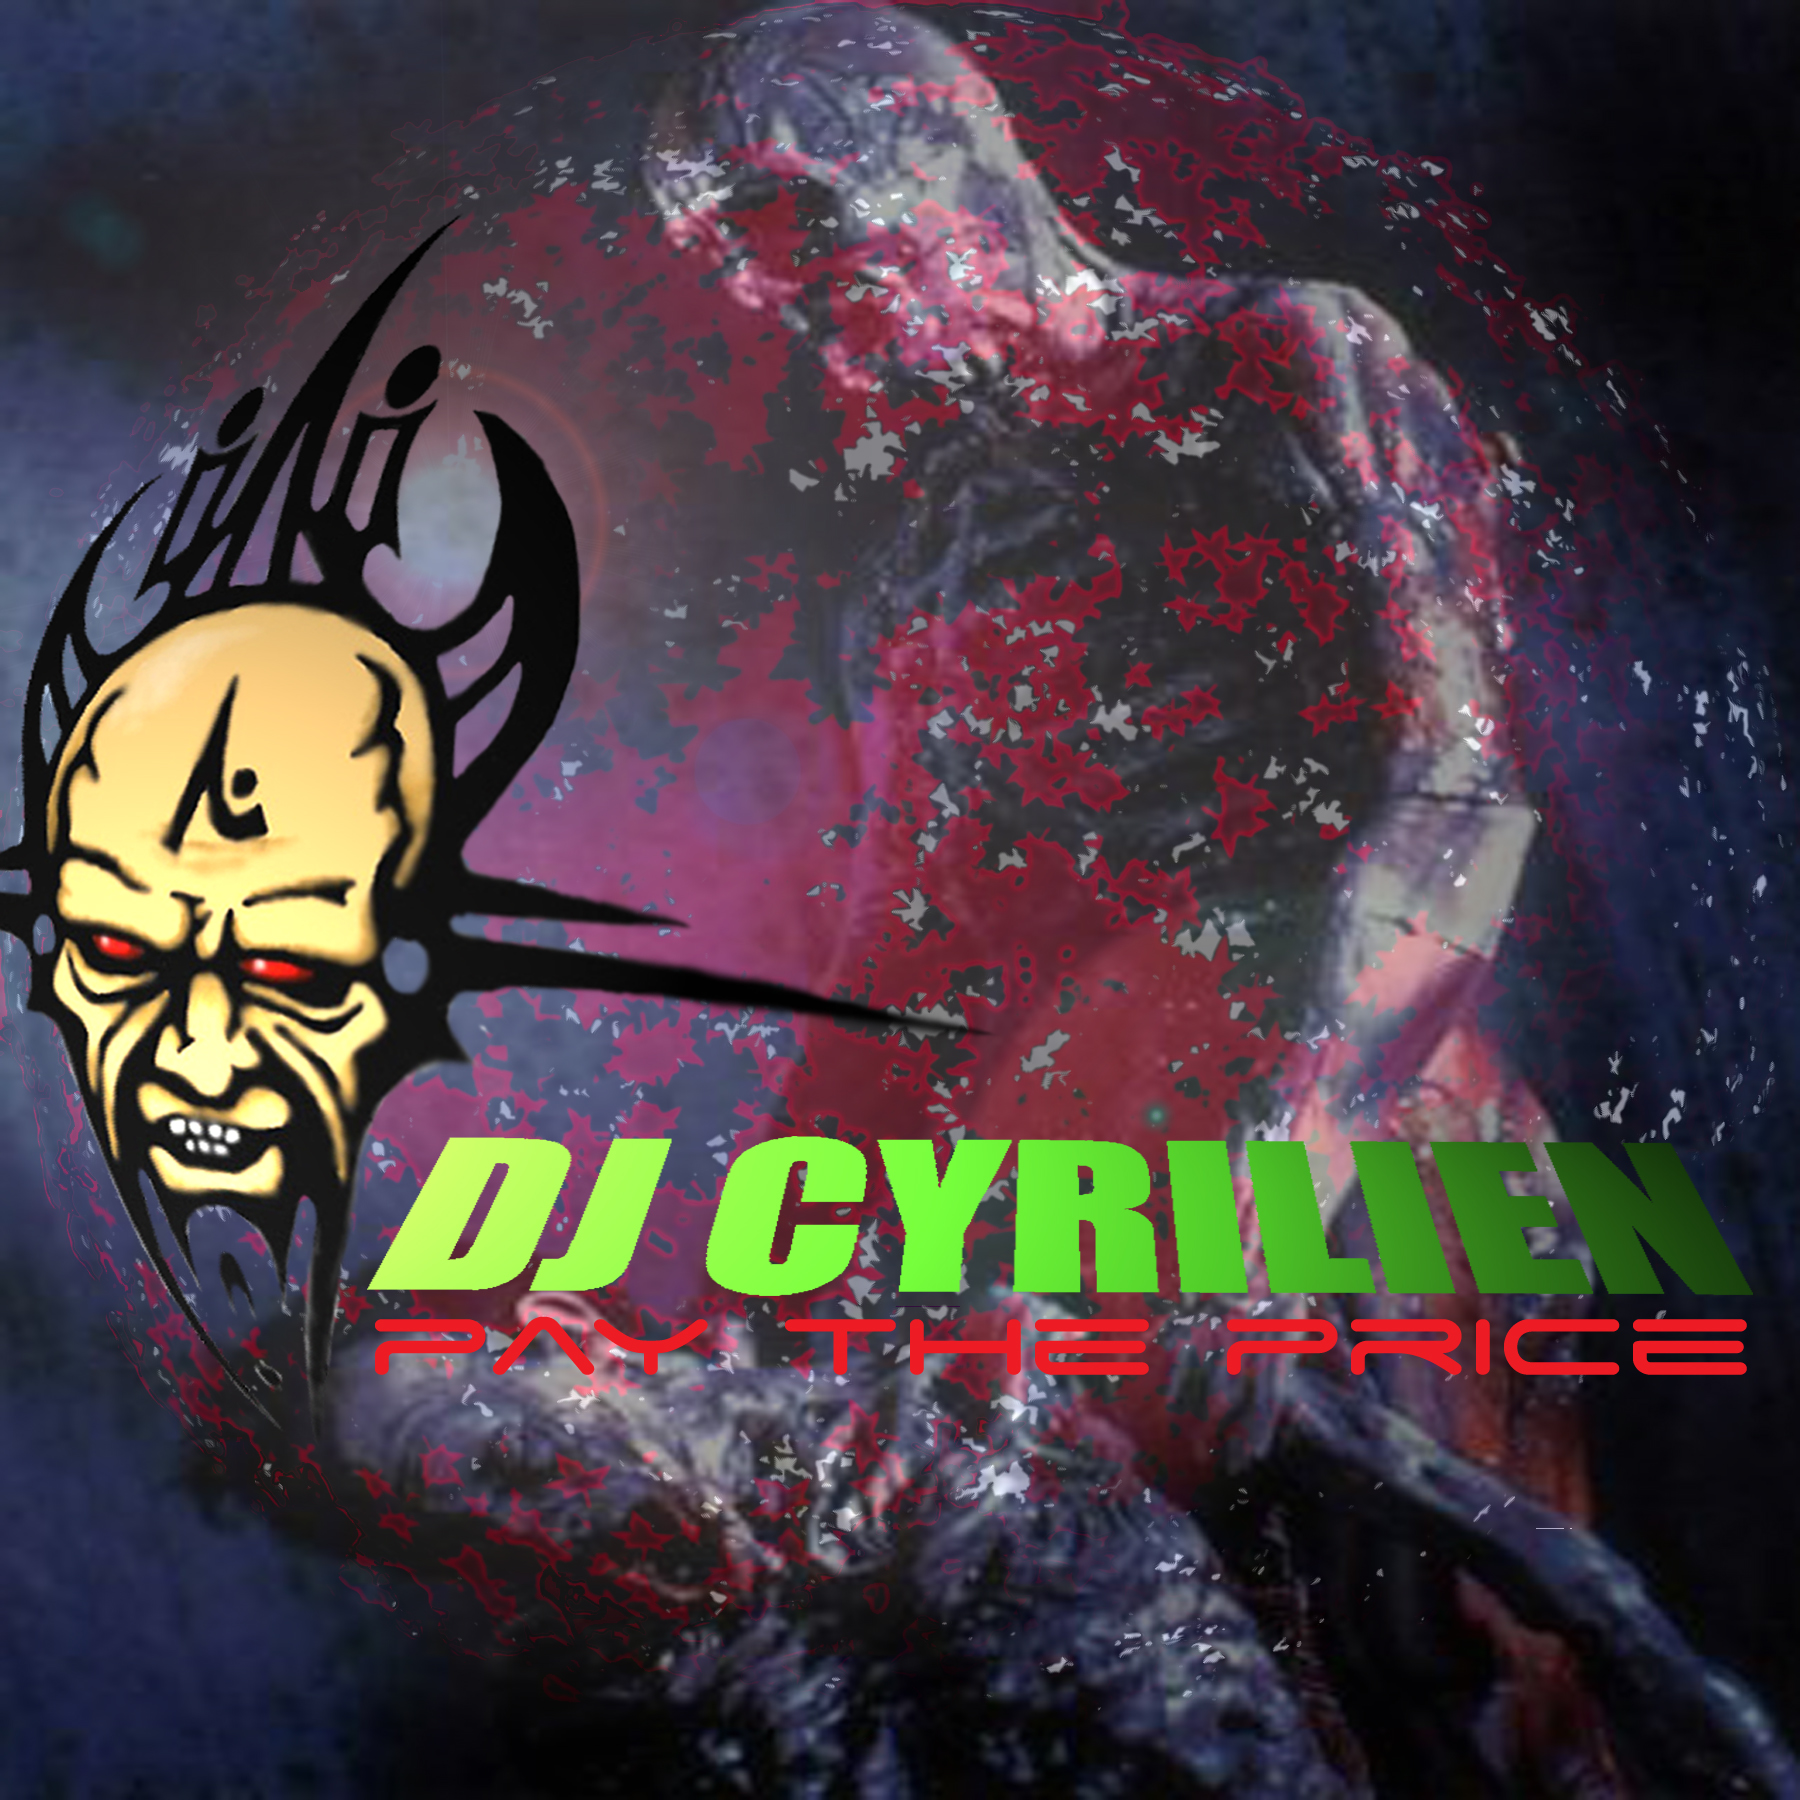 MP3CCREATDF012 - CORE CREATOR DIGIFILES - CYRILIEN - Pay The Price